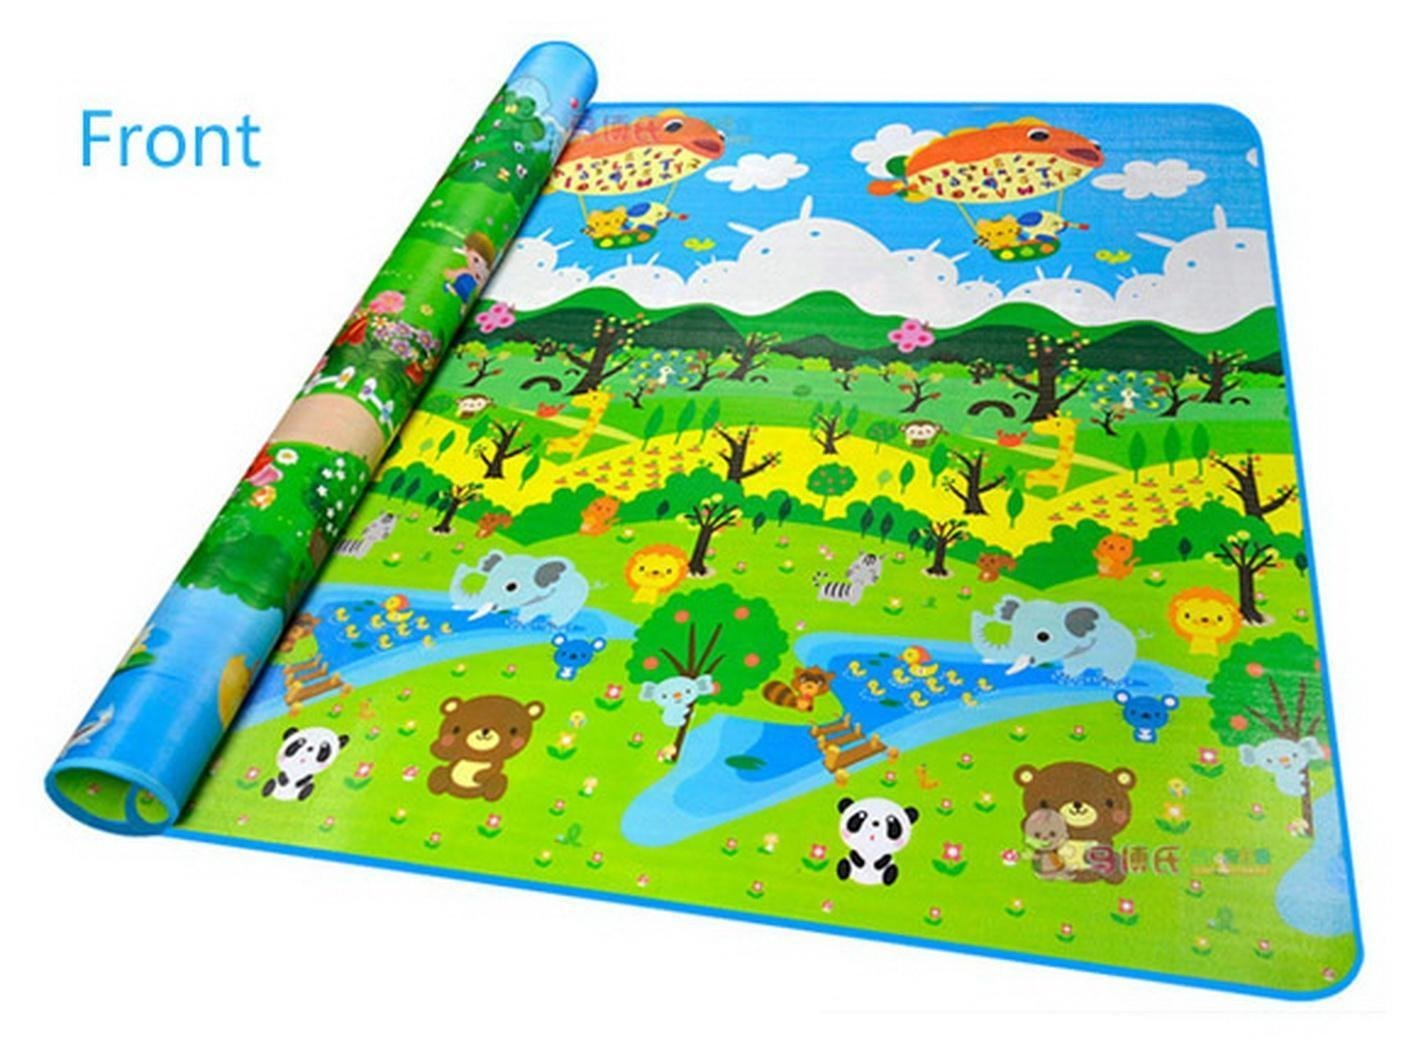 Baby Playing Mat Ocean Animal Crawling Floor Pad with Carring Bag [US Stock] (2) by Rateim (Image #2)